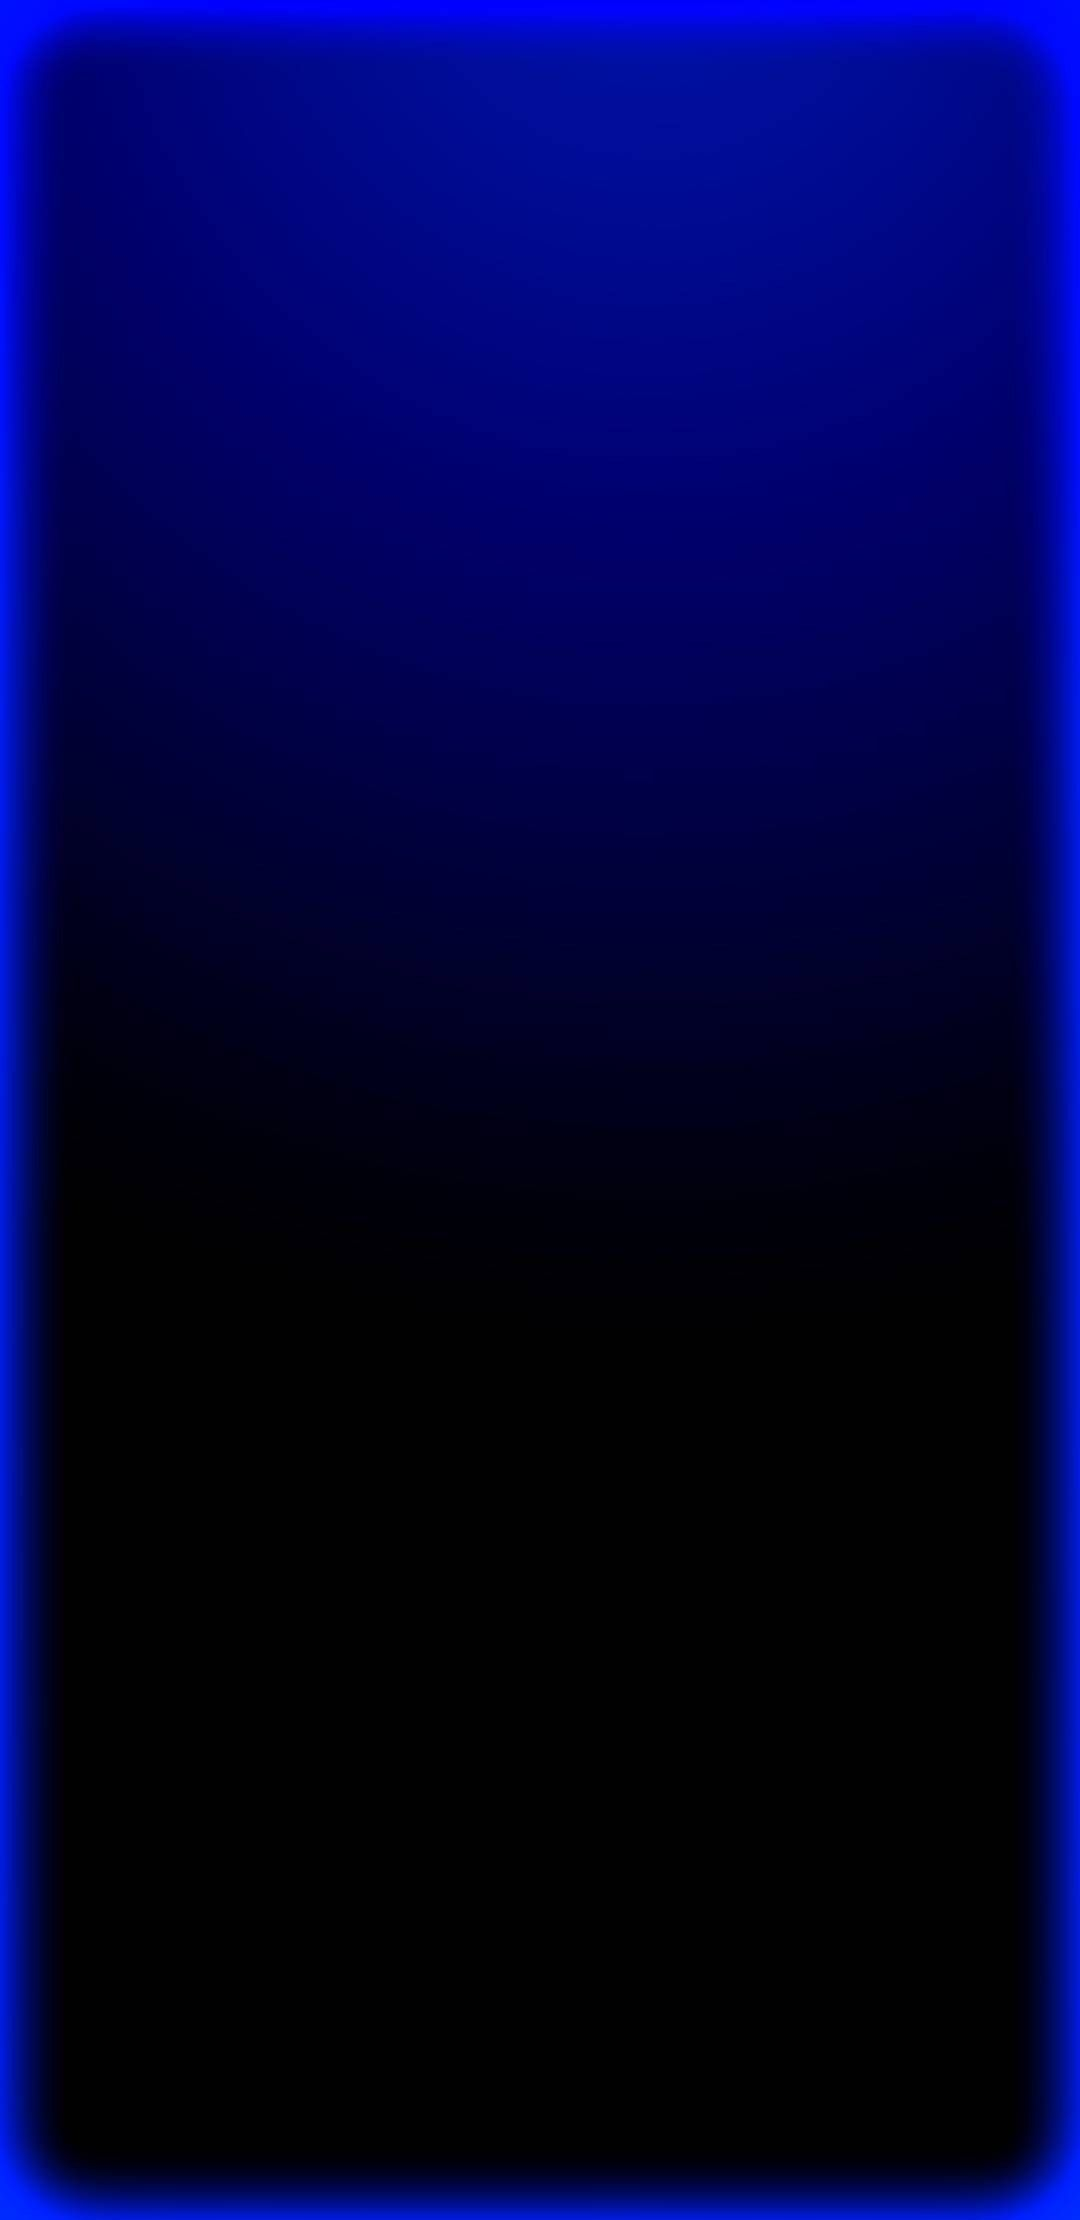 Wallpaper Royal Blue Wallpaper Blue Wallpaper Iphone Blue Wallpapers